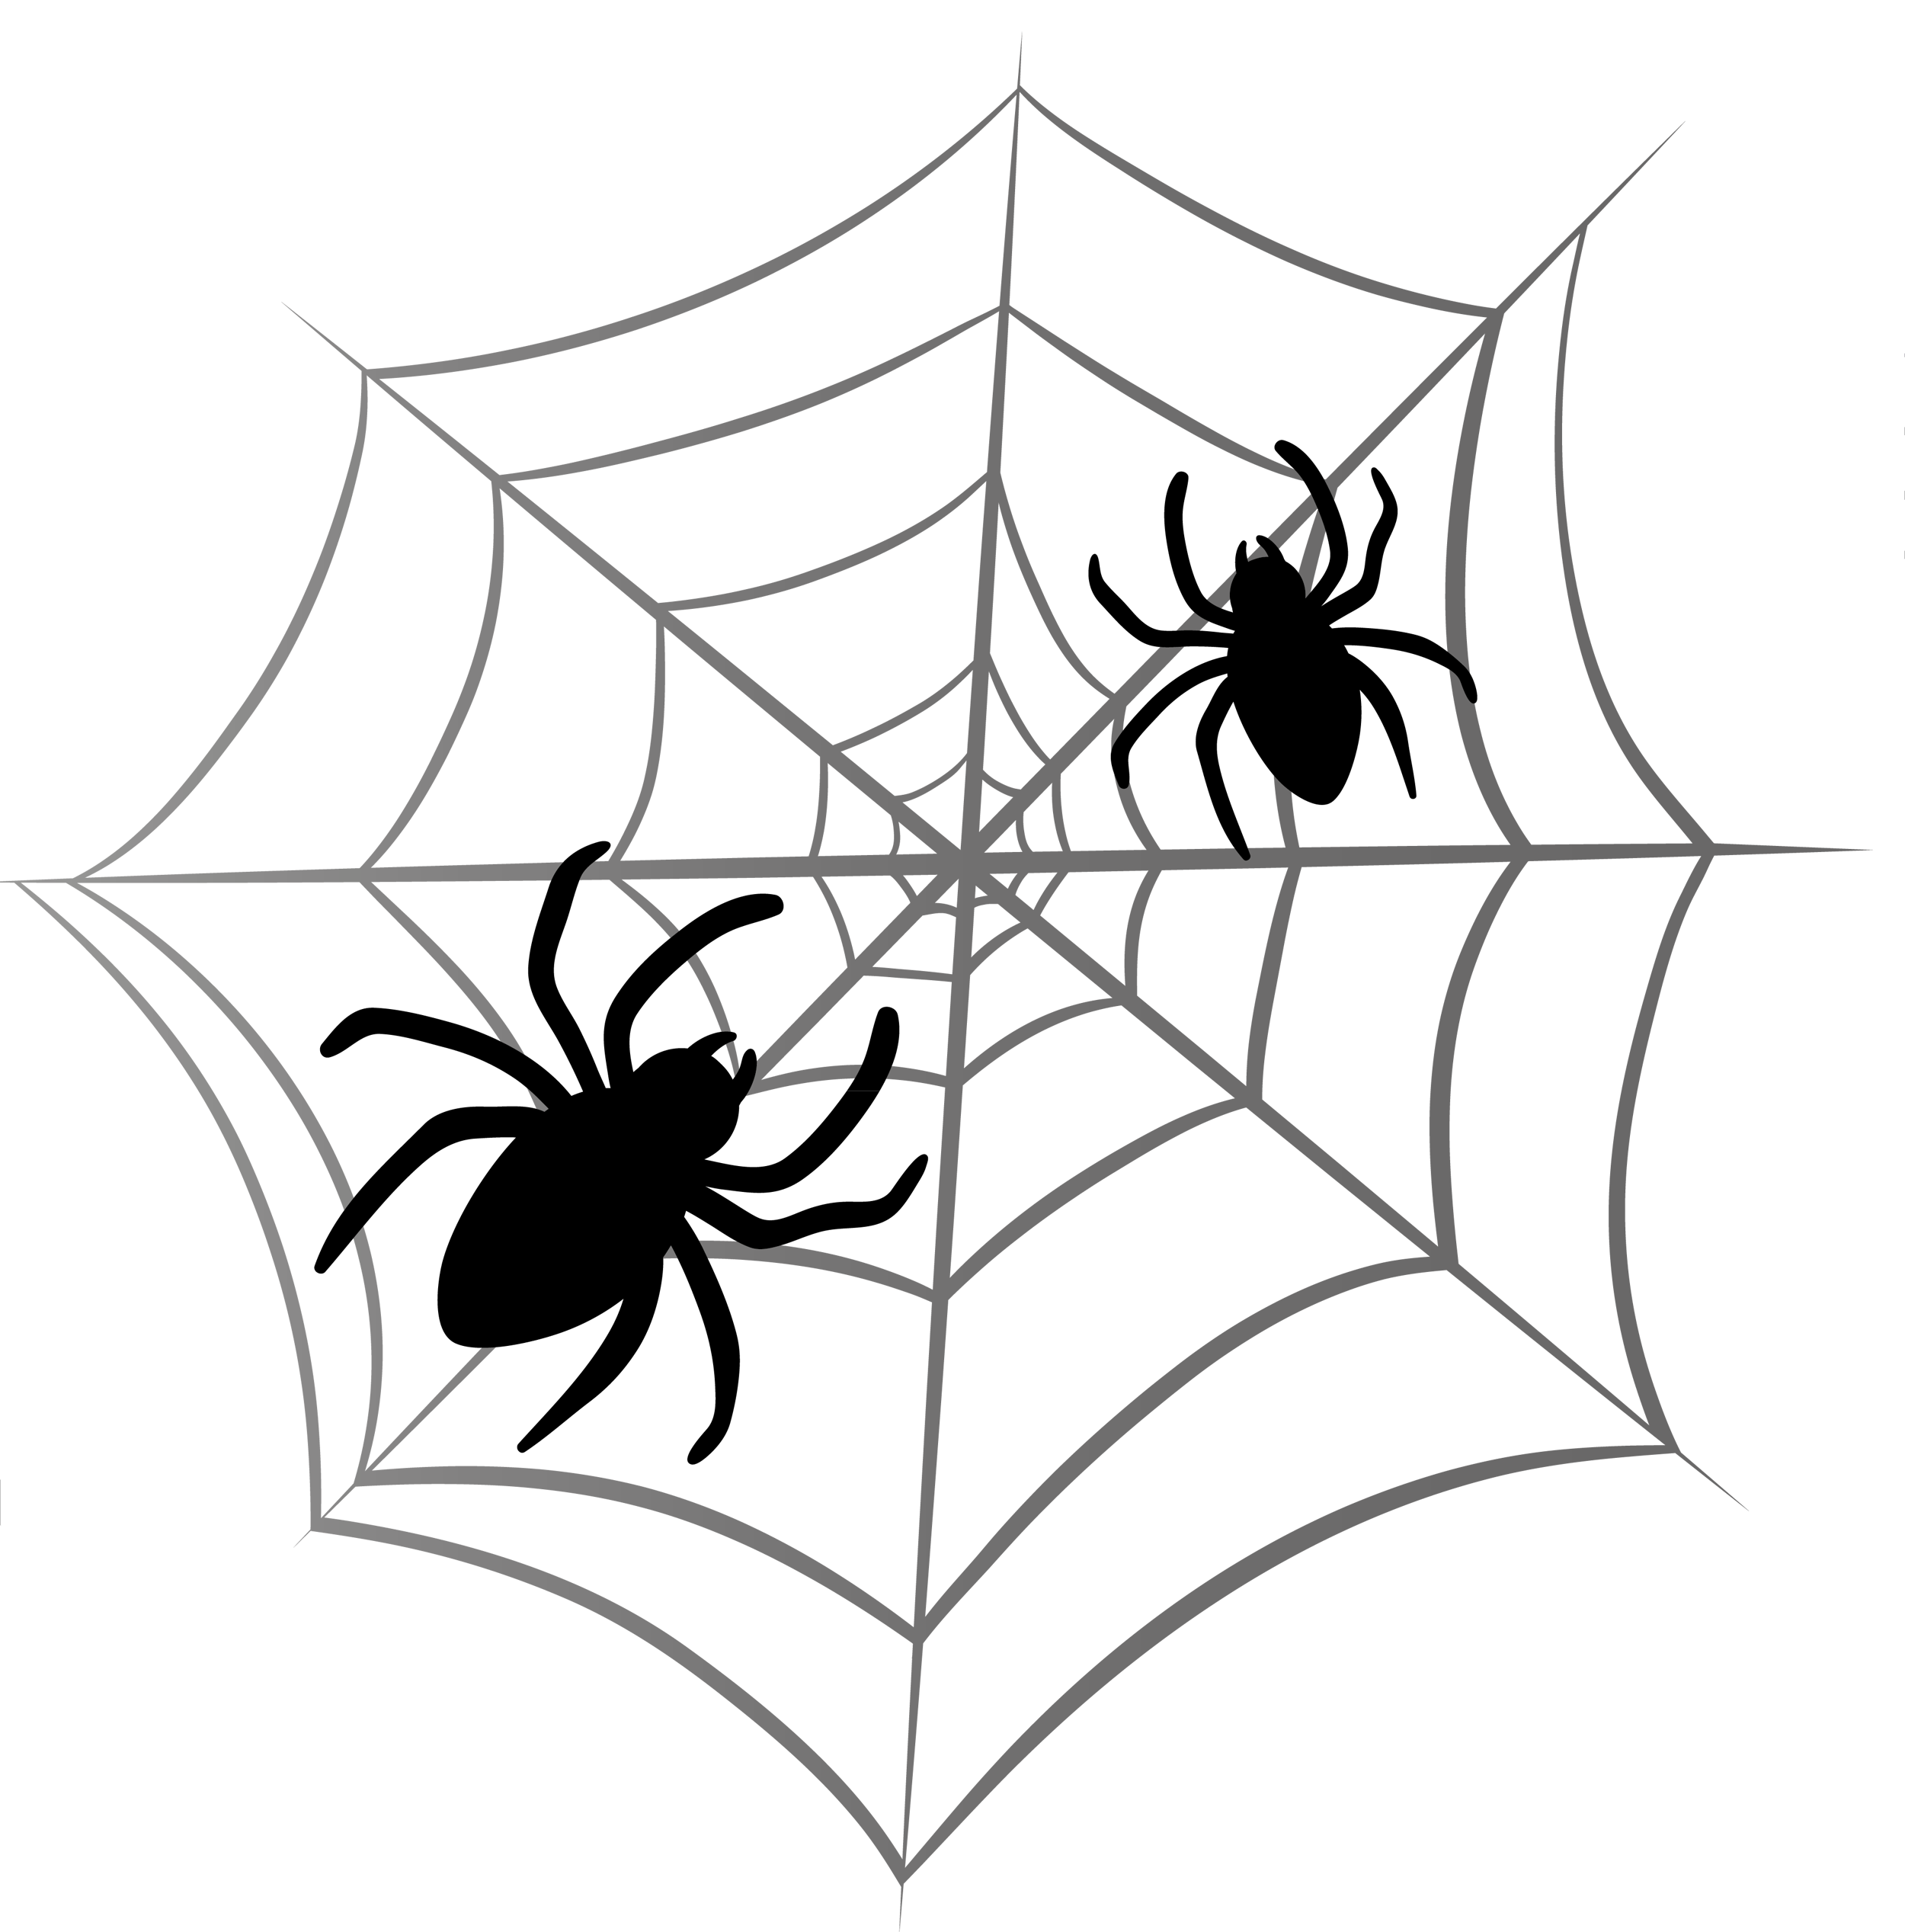 2500x2535 Spider web spiders clip art clipart 4 –